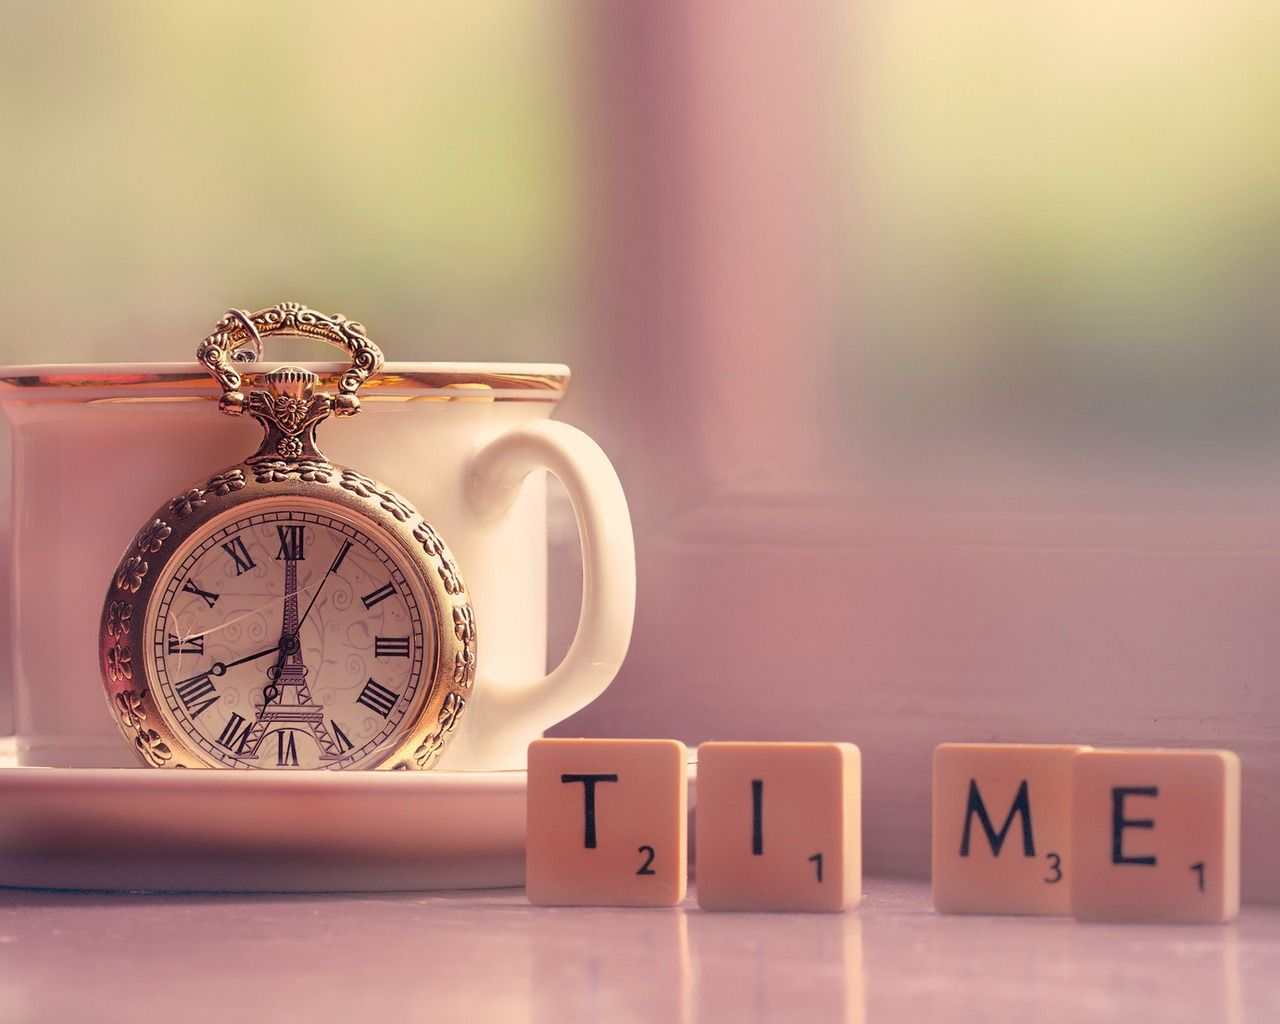 Image for Time Travel Clock Wallpaper Free HD